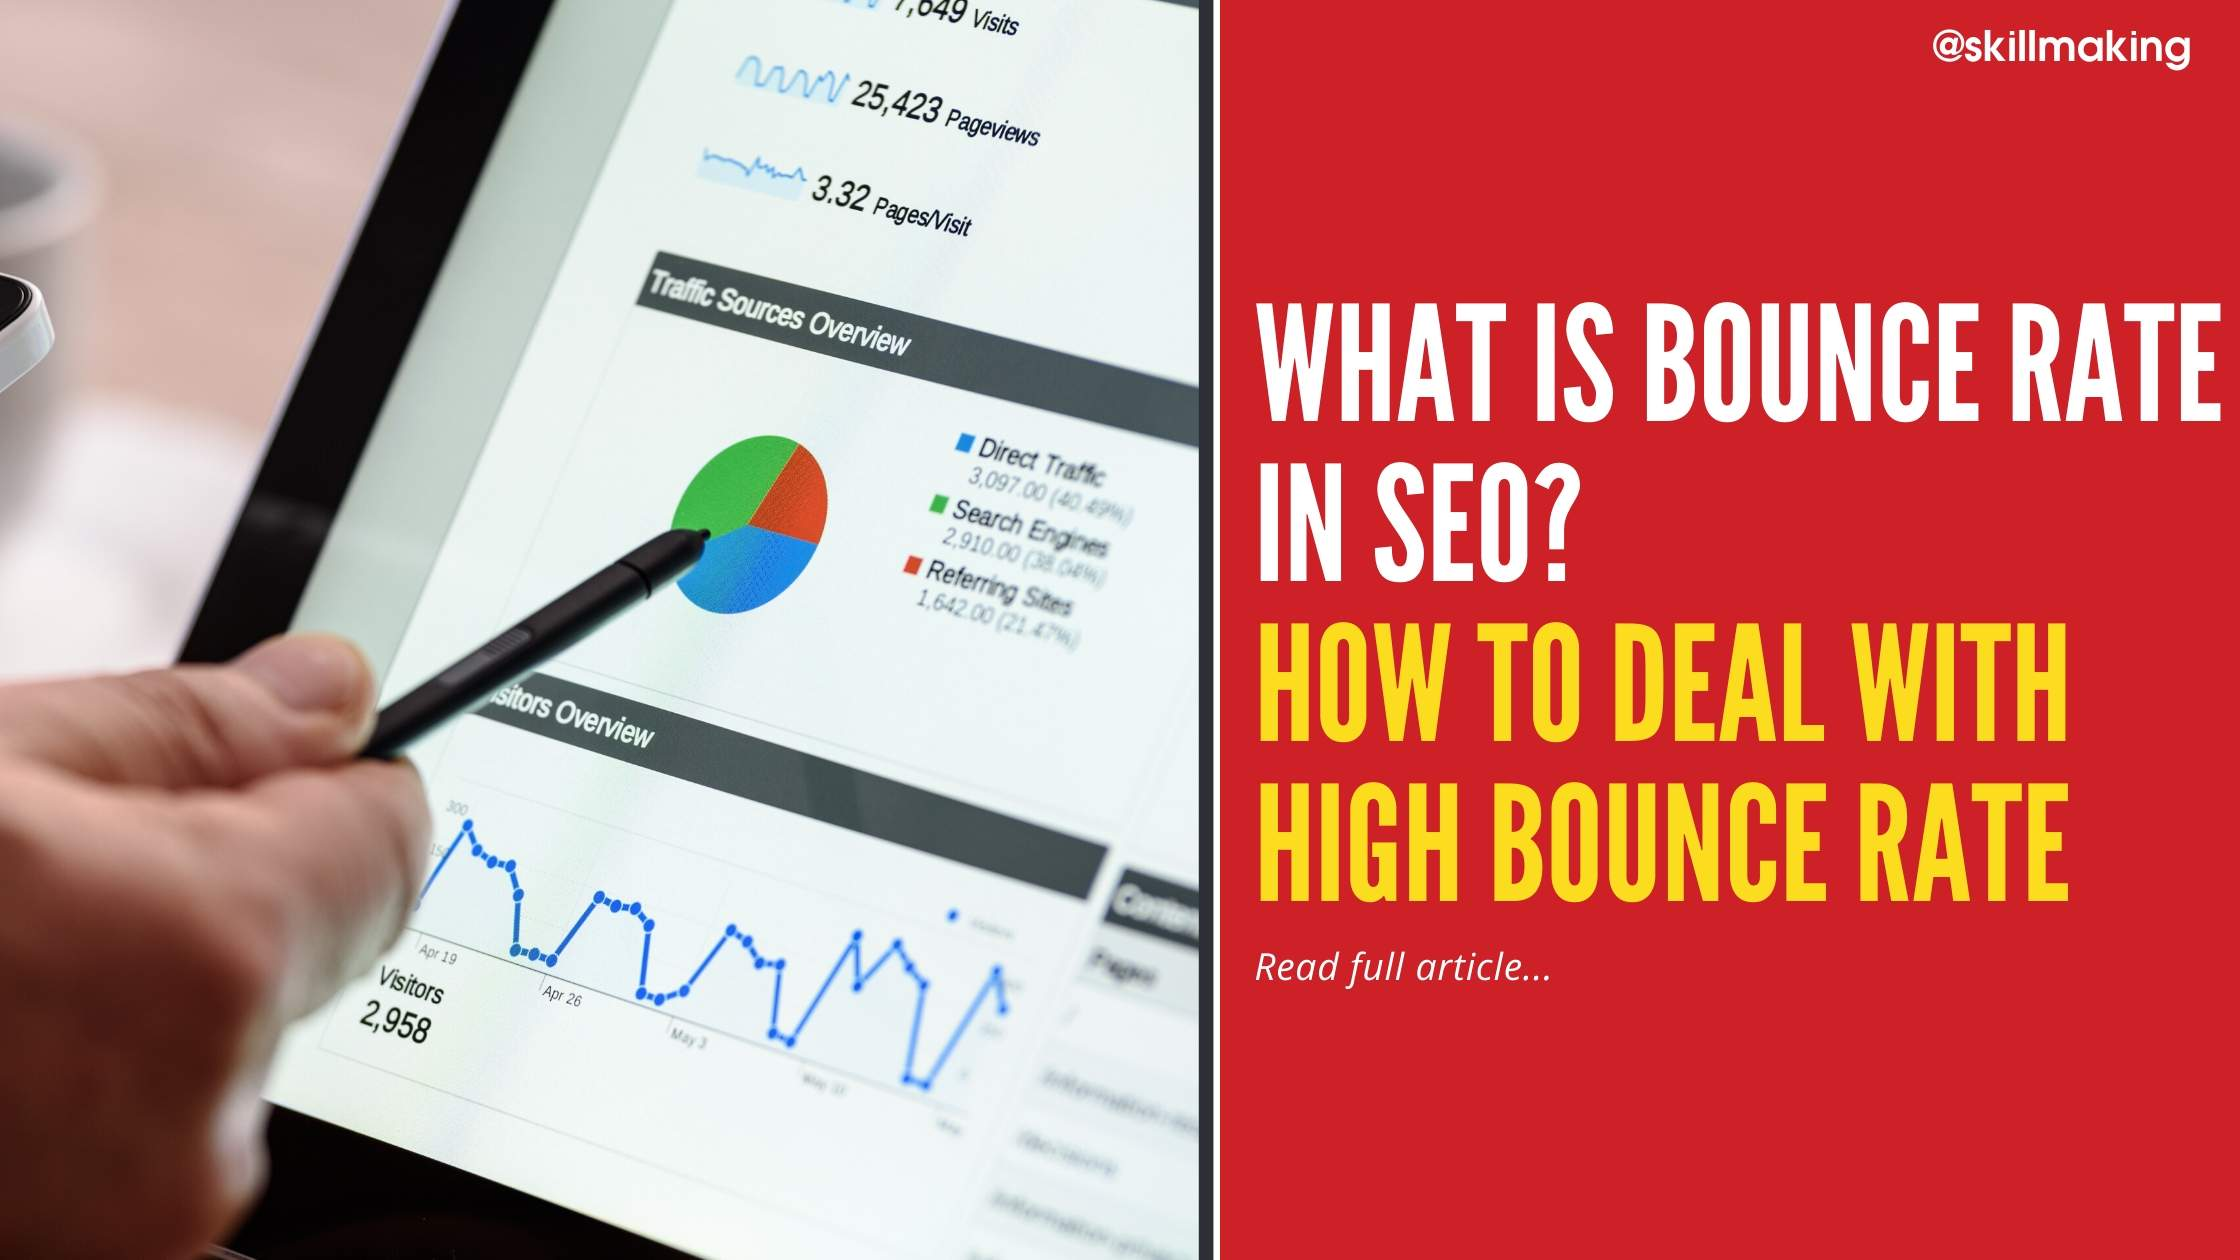 What is Bounce Rate in SEO? How to Deal With High Bounce Rate in SEO